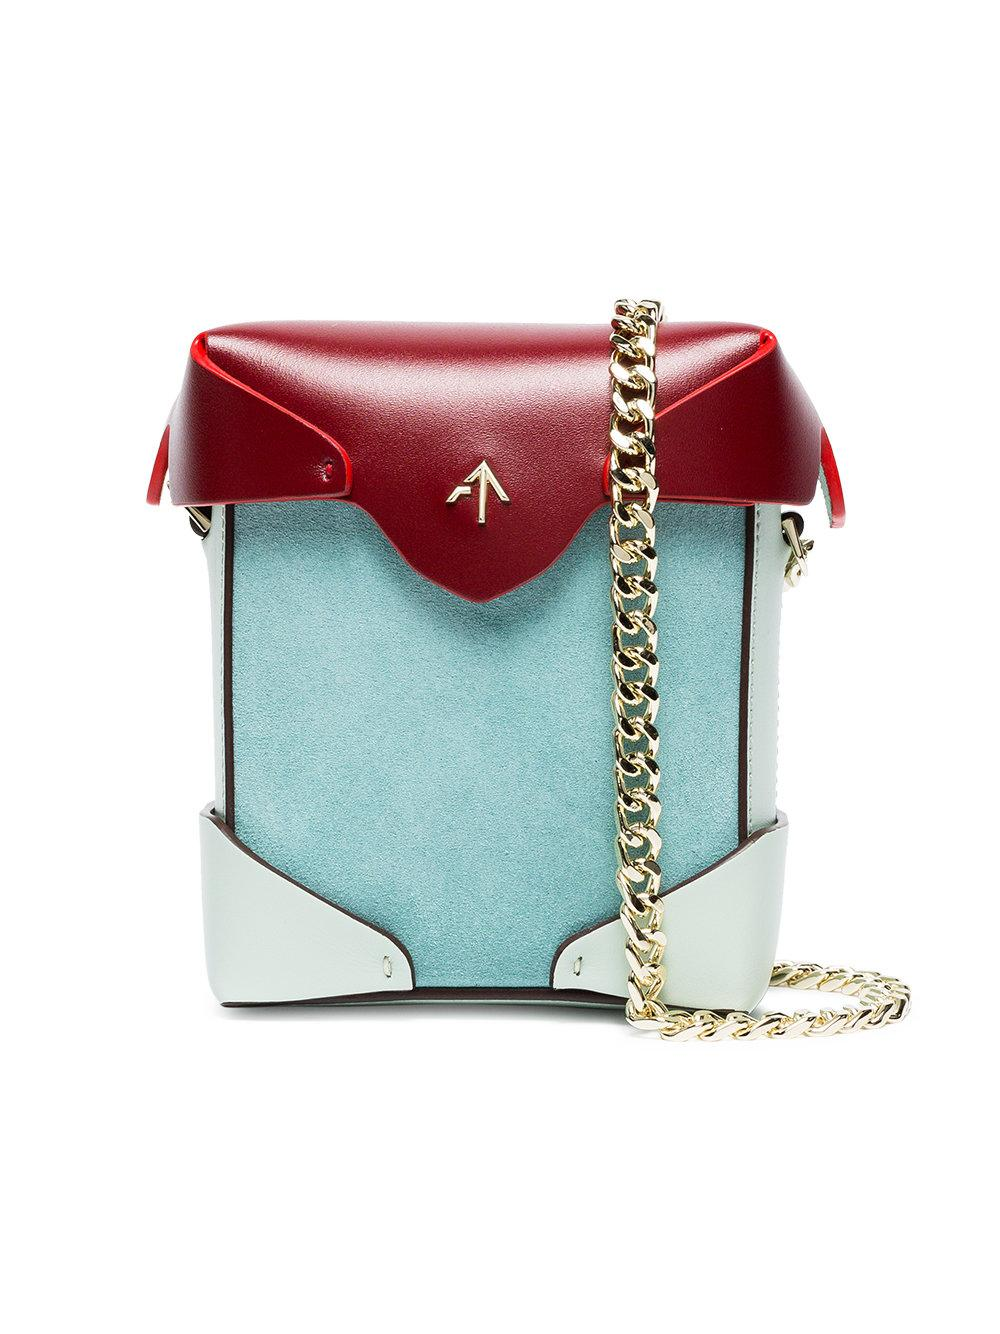 Manu Atelier Multicoloured Pristine Leather Cross Body Bag In Blue